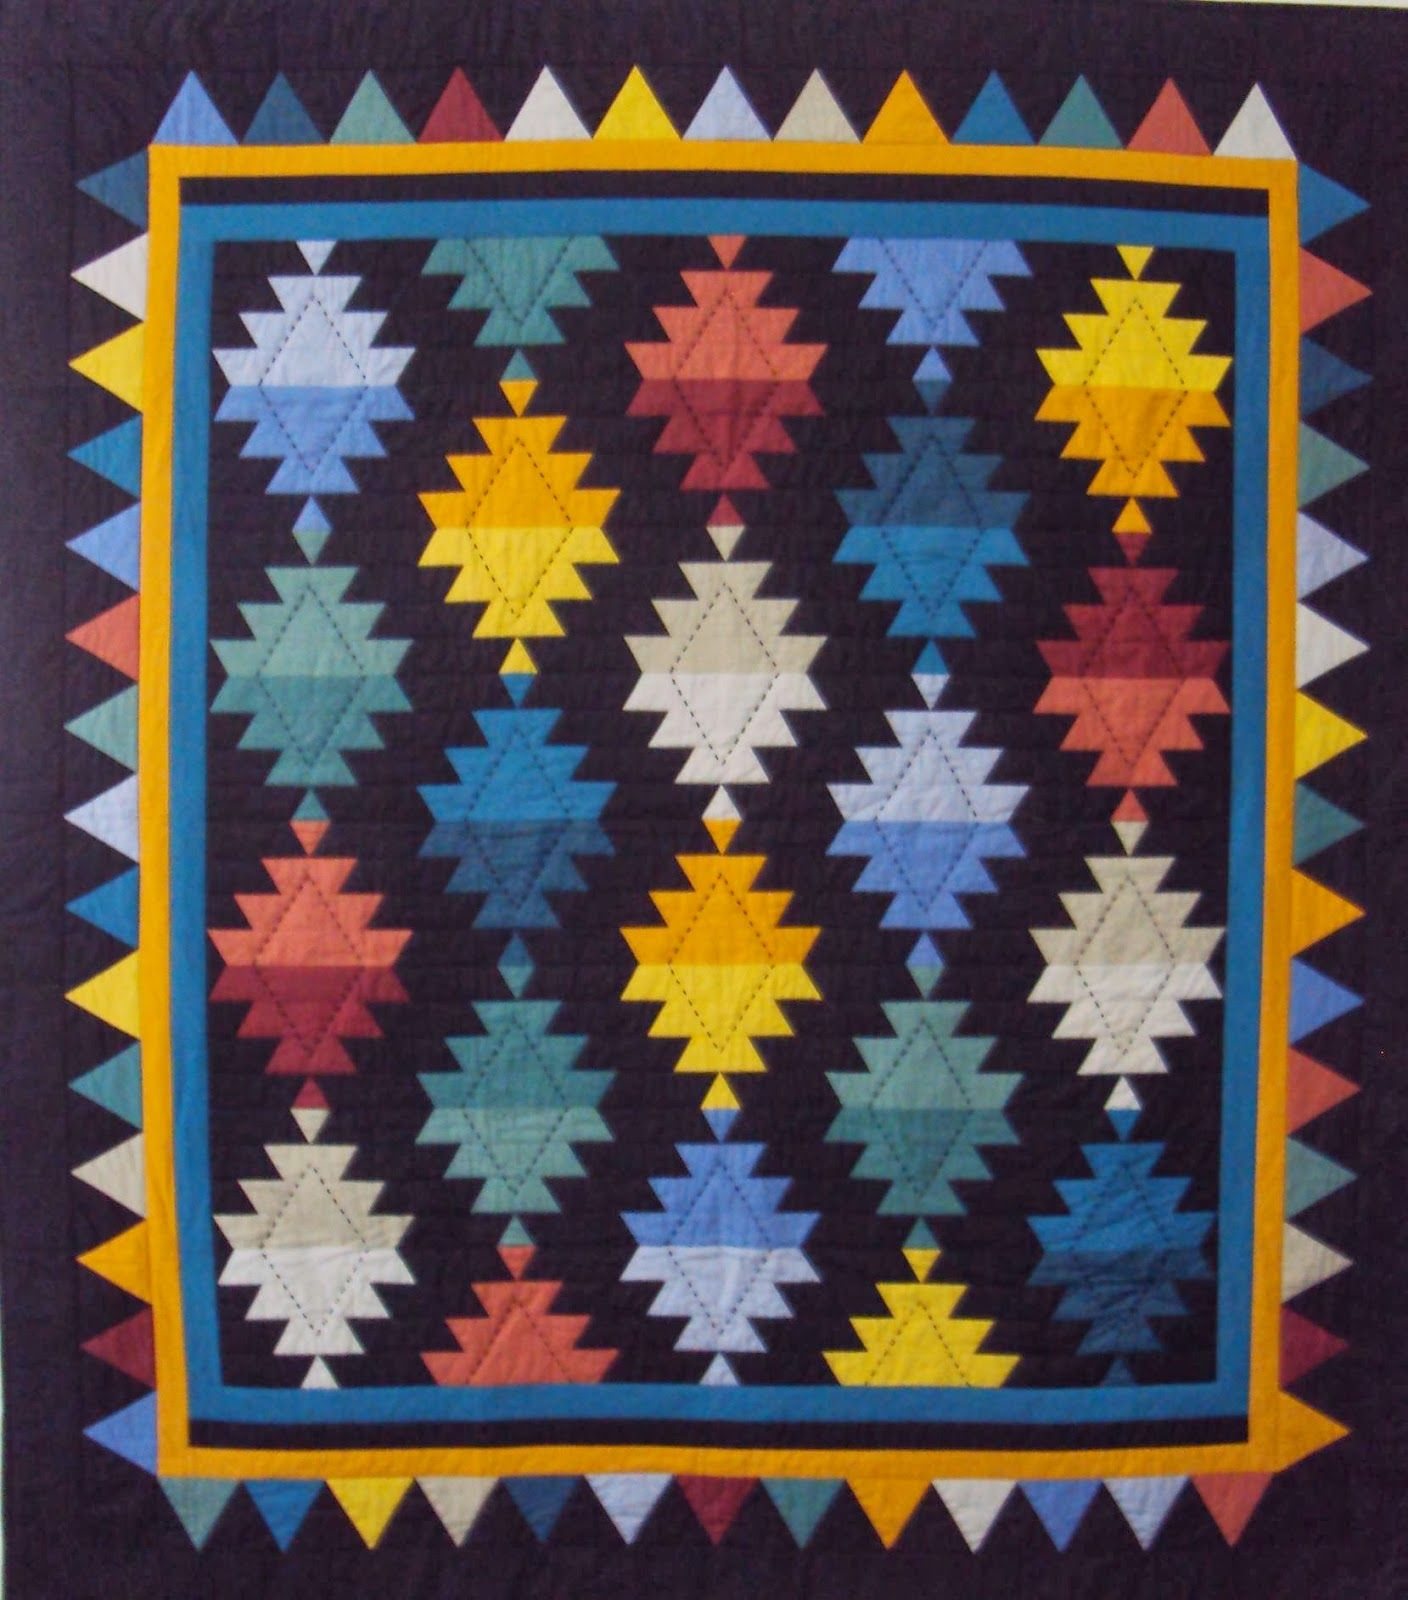 Chinese Lantern Quilt Patterns Kaleidoscope Stars